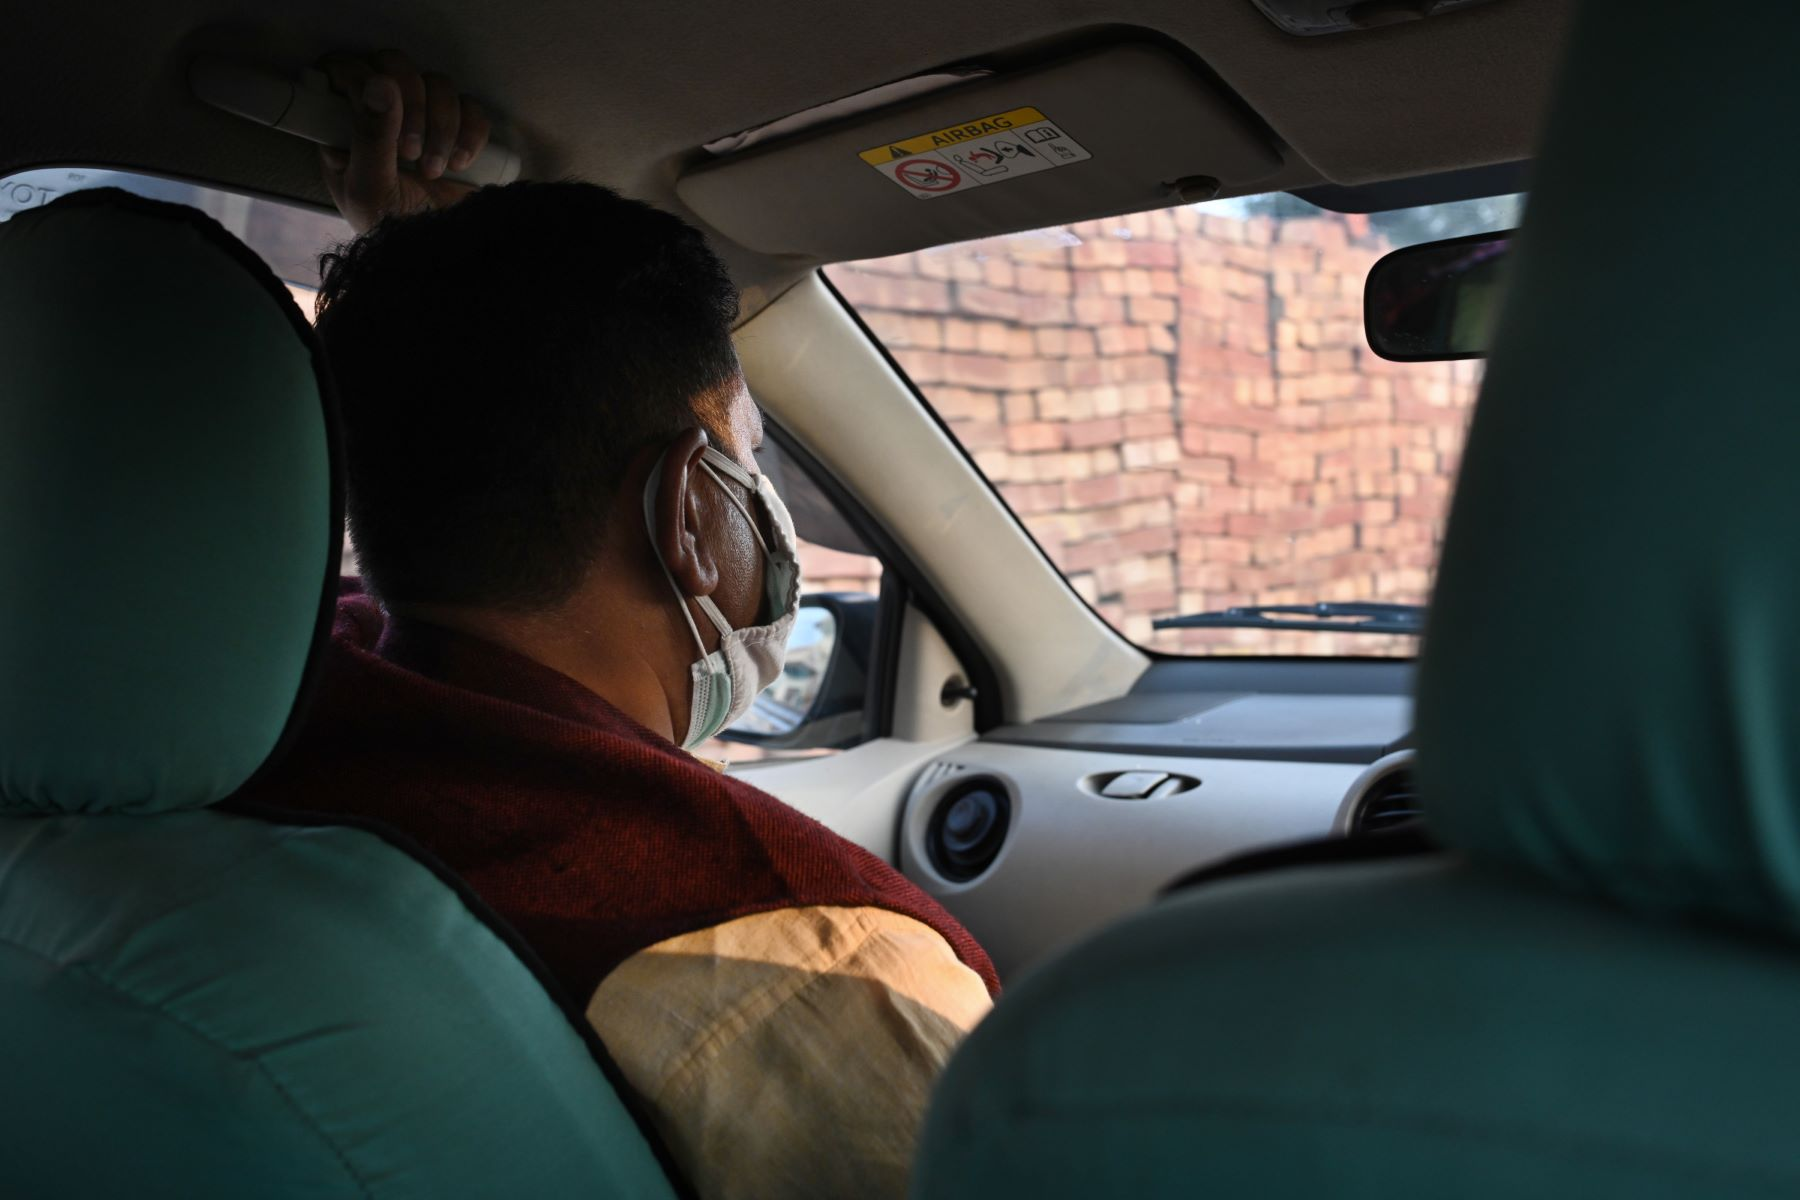 Rishi Kant on his way to a village in Haryana